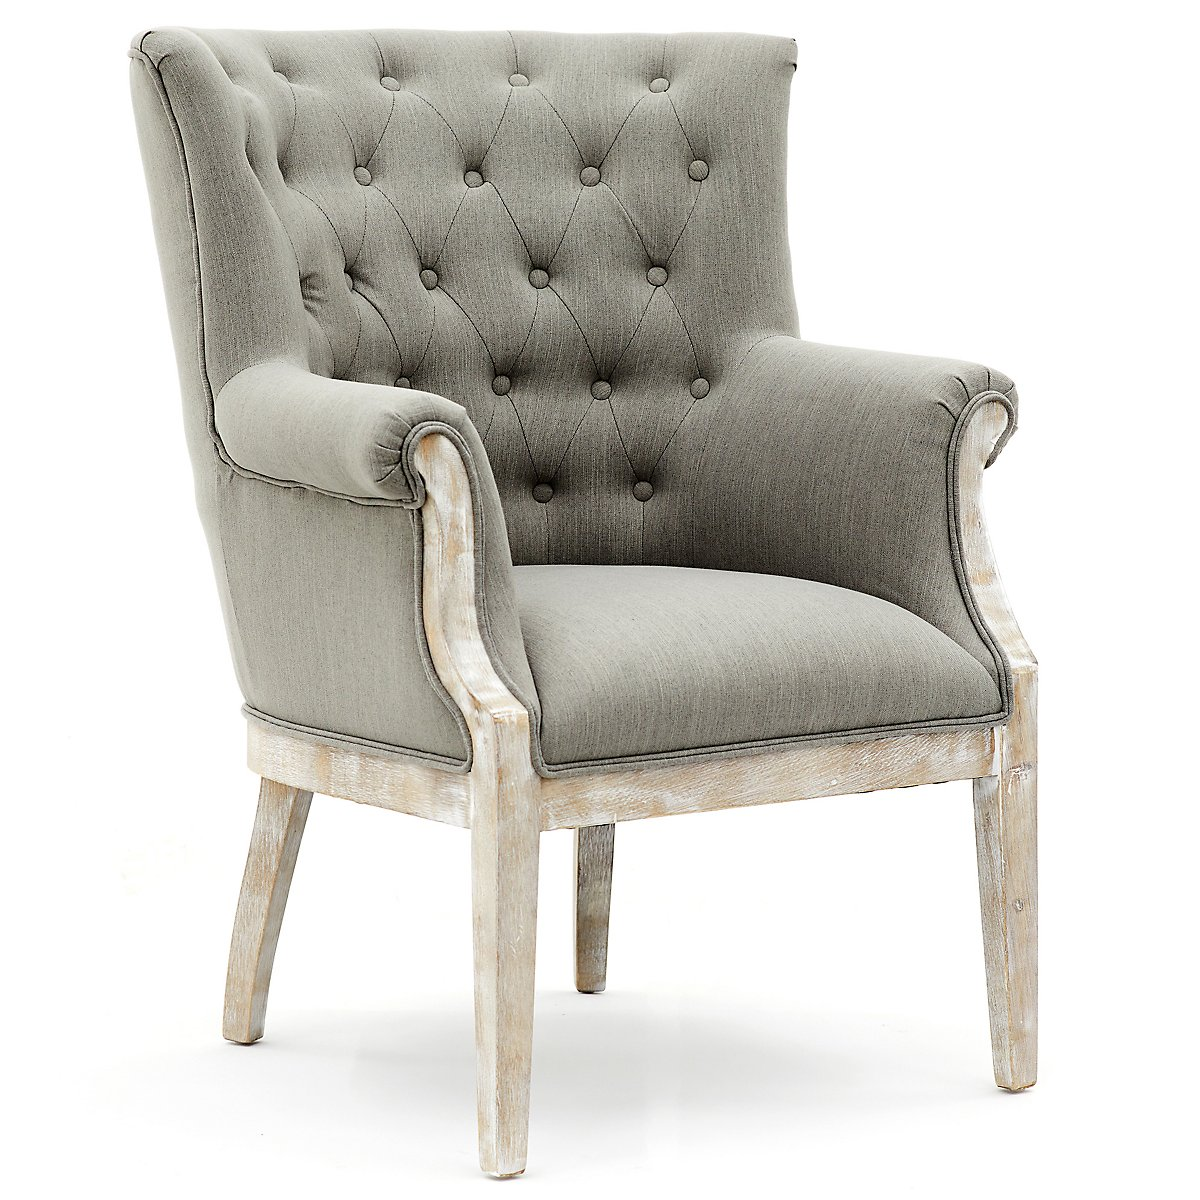 Home Accents Furniture: Paxton Gray Fabric Accent Chair